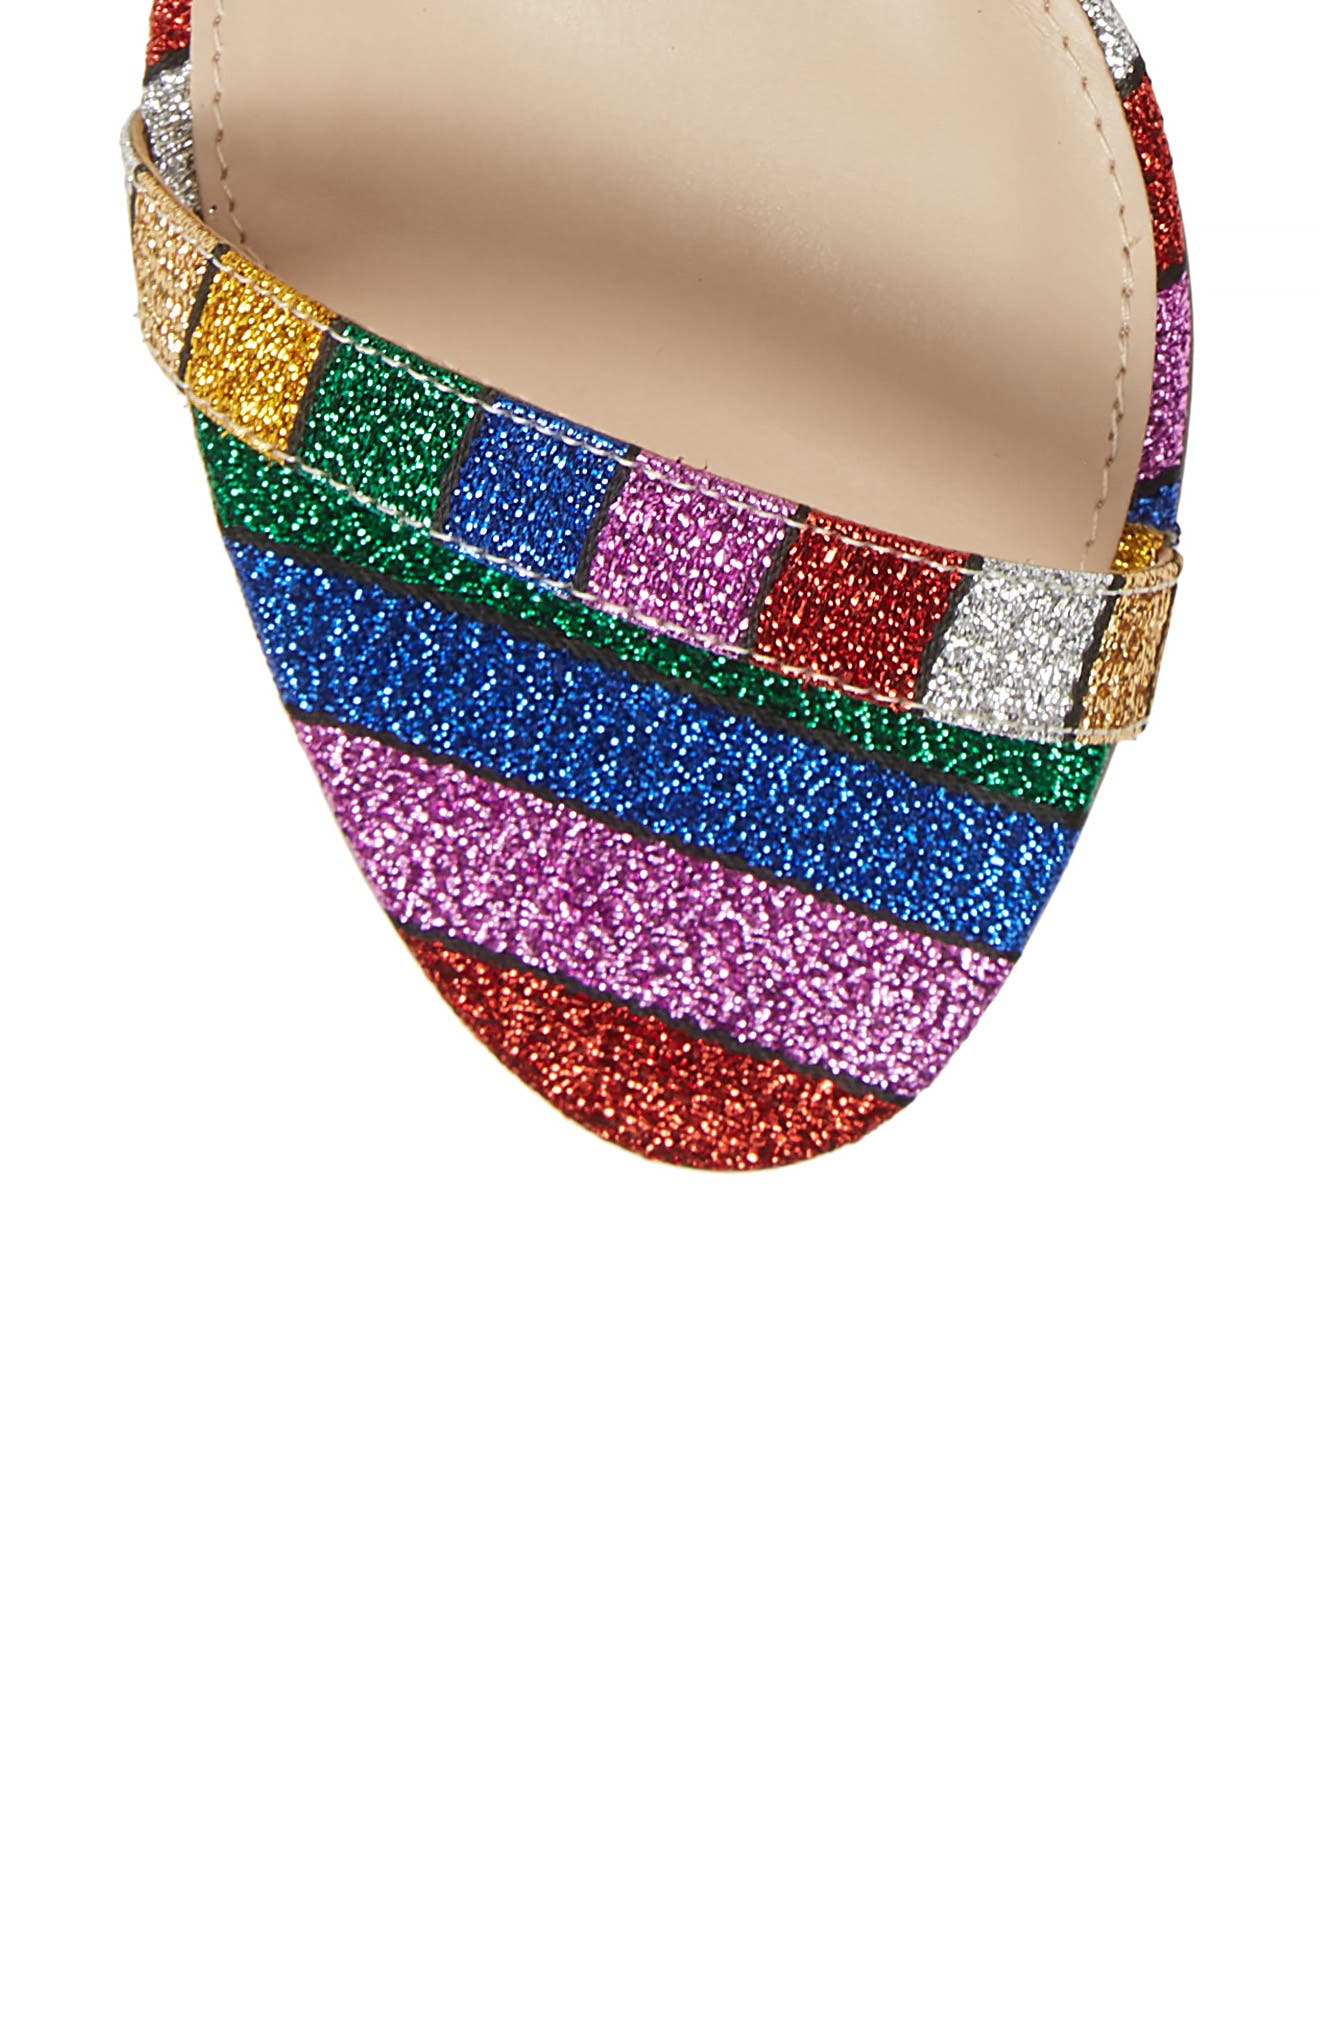 NINA, Vanna Ankle Strap Sandal, Alternate thumbnail 5, color, RAINBOW MULTI FABRIC